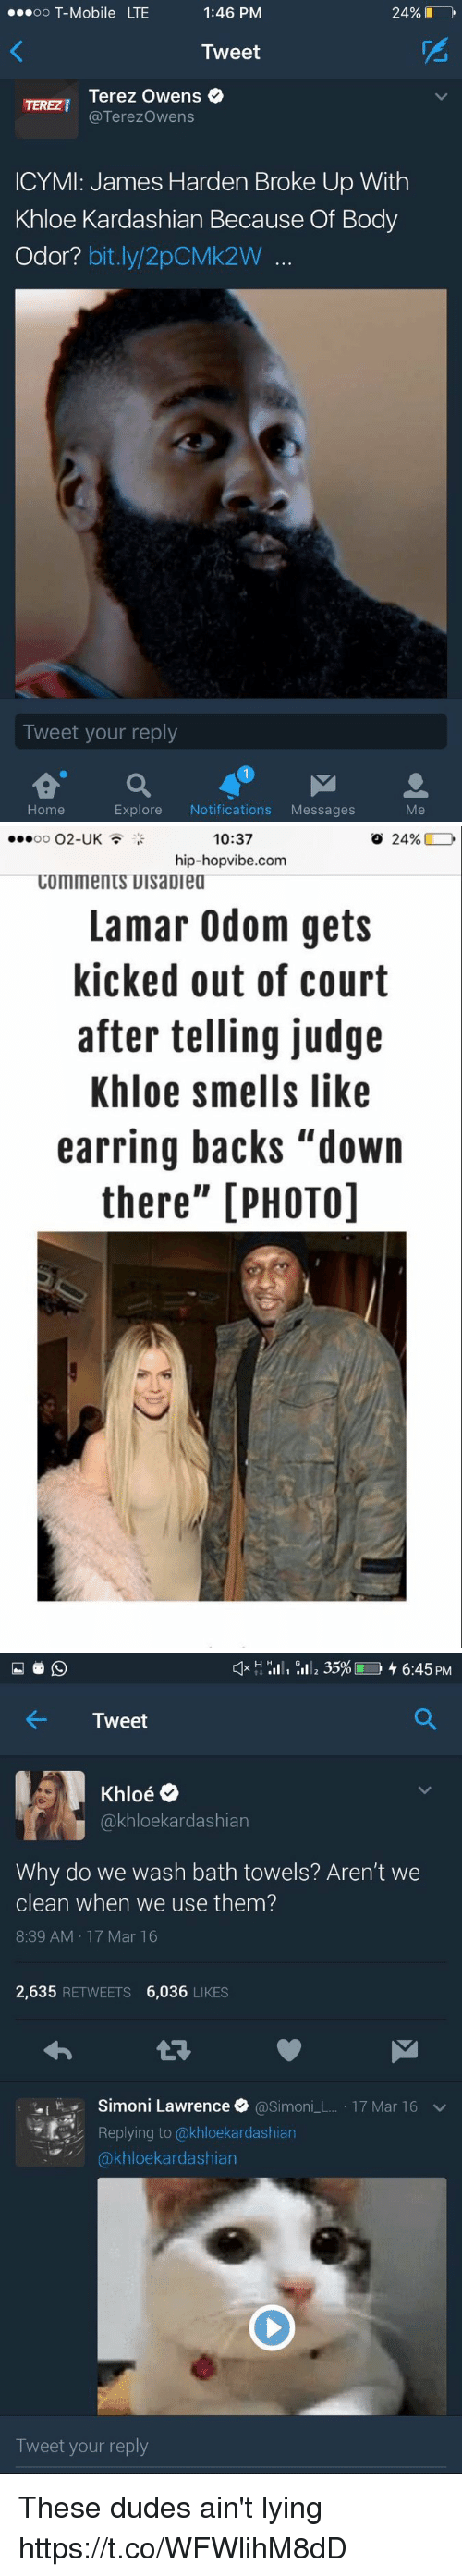 "Khloe Kardashian: OO  T-Mobile LTE  1:46 PM  24%  Tweet  Terez Owens  Terezowens  ICYMI: James Harden Broke Up With  Khloe Kardashian Because Of Body  Odor?  bit.ly 2pCMk2W  Tweet your reply  Explore  Notifications  Messages  Home   10:37  o 24%  OO  O2-UK  hip-hopvibe.com  COMMentS UIsaDiea  Lamar Odom gets  kicked out of court  after telling judge  Khloe smells like  earring backs ""down  there"" [PHOTO]   H H  III, 35% 4 6:45 PM  4- Tweet  Oe  akhloekardashian  Why do we wash bath towels? Aren't we  clean when we use them?  8:39 AM 17 Mar 16  2,635  RETWEETS  6,036  LIKES  .I Simoni Lawrence  @Simon  L. 17 Mar 16 v  Replying to (akhloekardashian  kardashian  Tweet your reply These dudes ain't lying https://t.co/WFWlihM8dD"